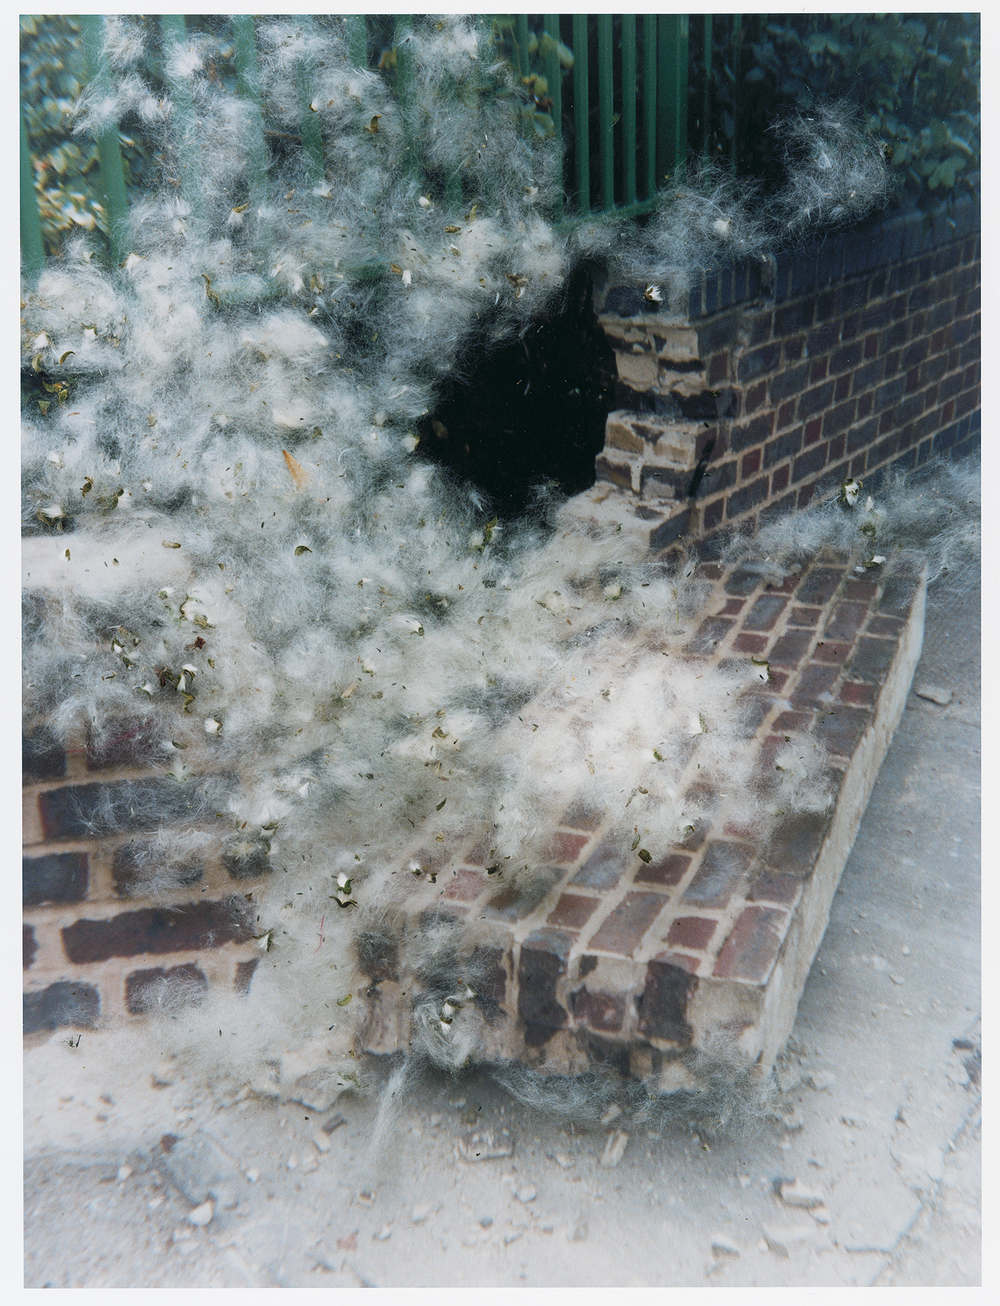 """Untitled"" from the series Hackney Flowers, 2005 - 2007"